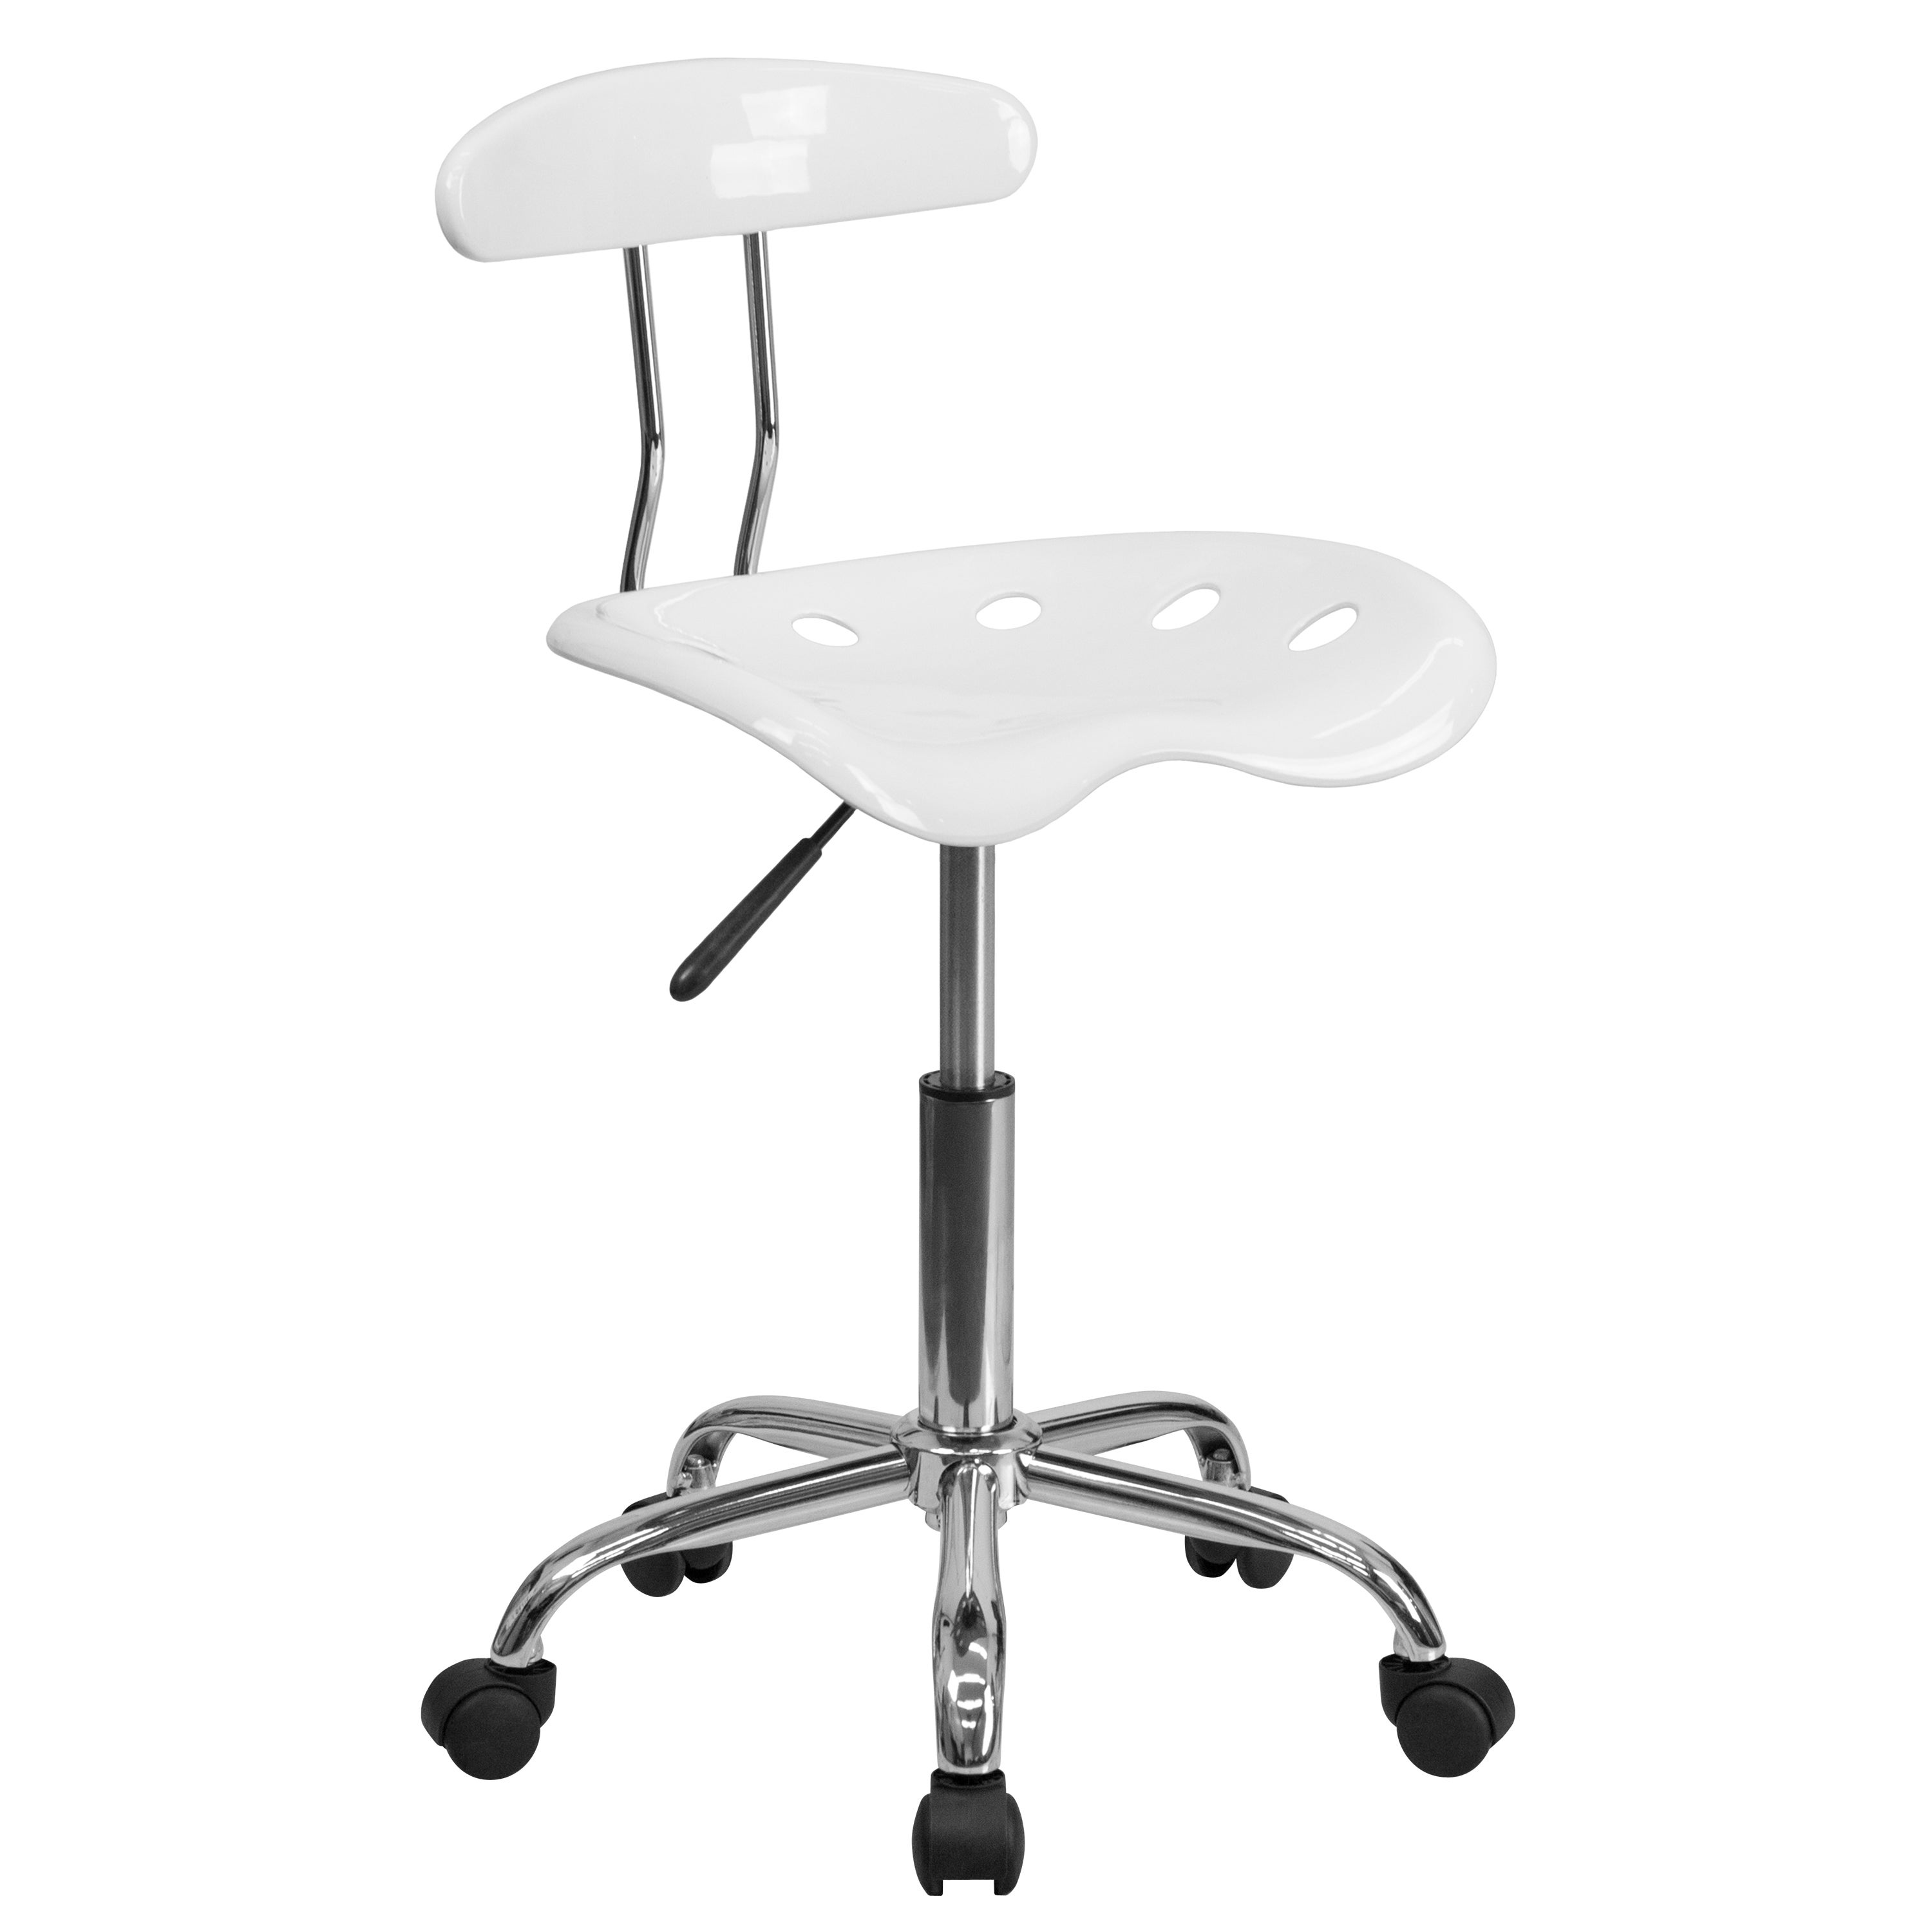 Saddle White Home Office Chair with Tractor Seat (1 Chair)